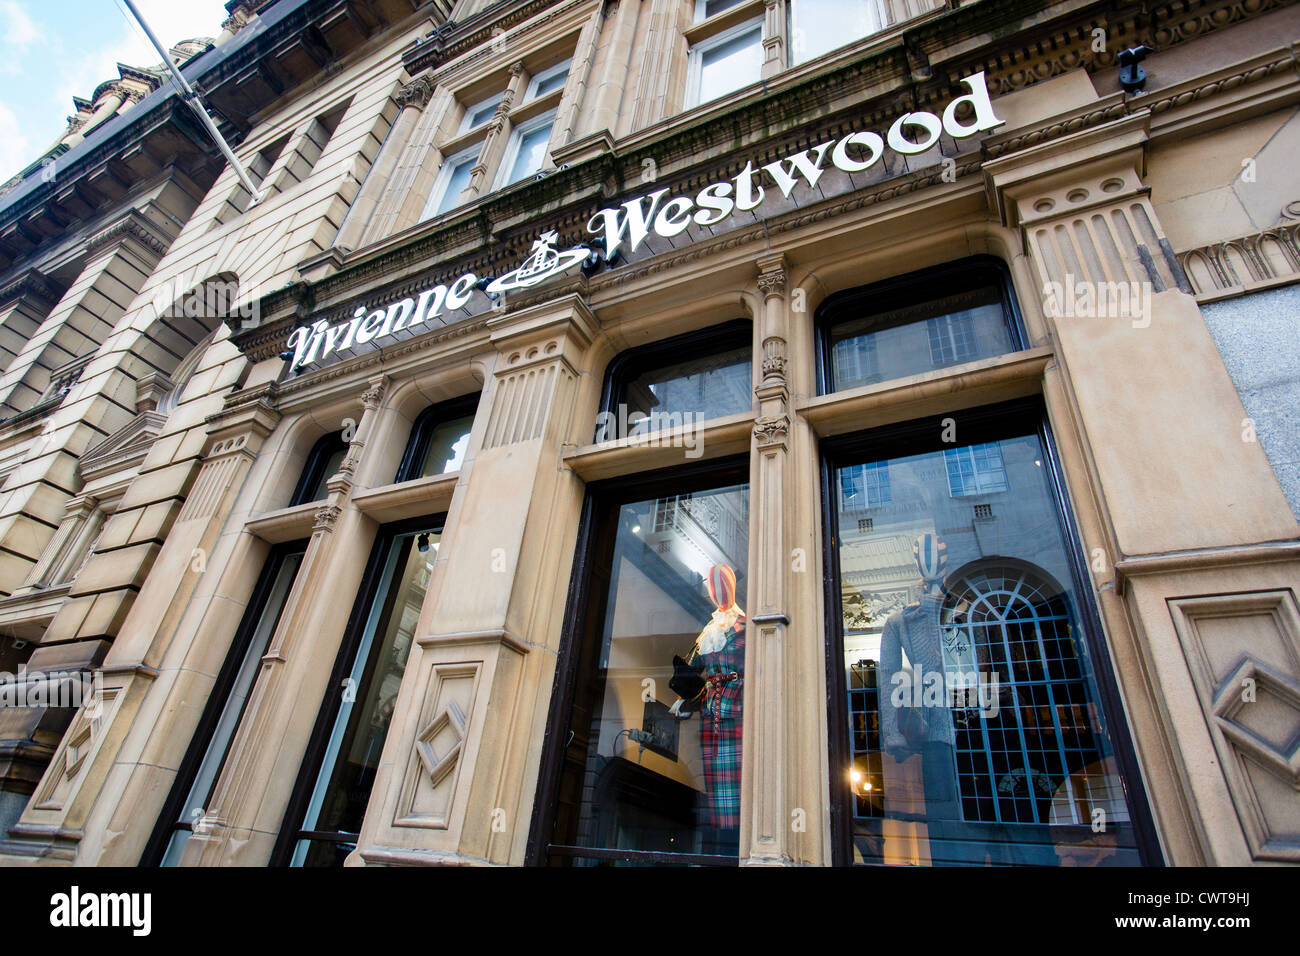 The Vivienne Westwood store in Manchester, UK - Stock Image